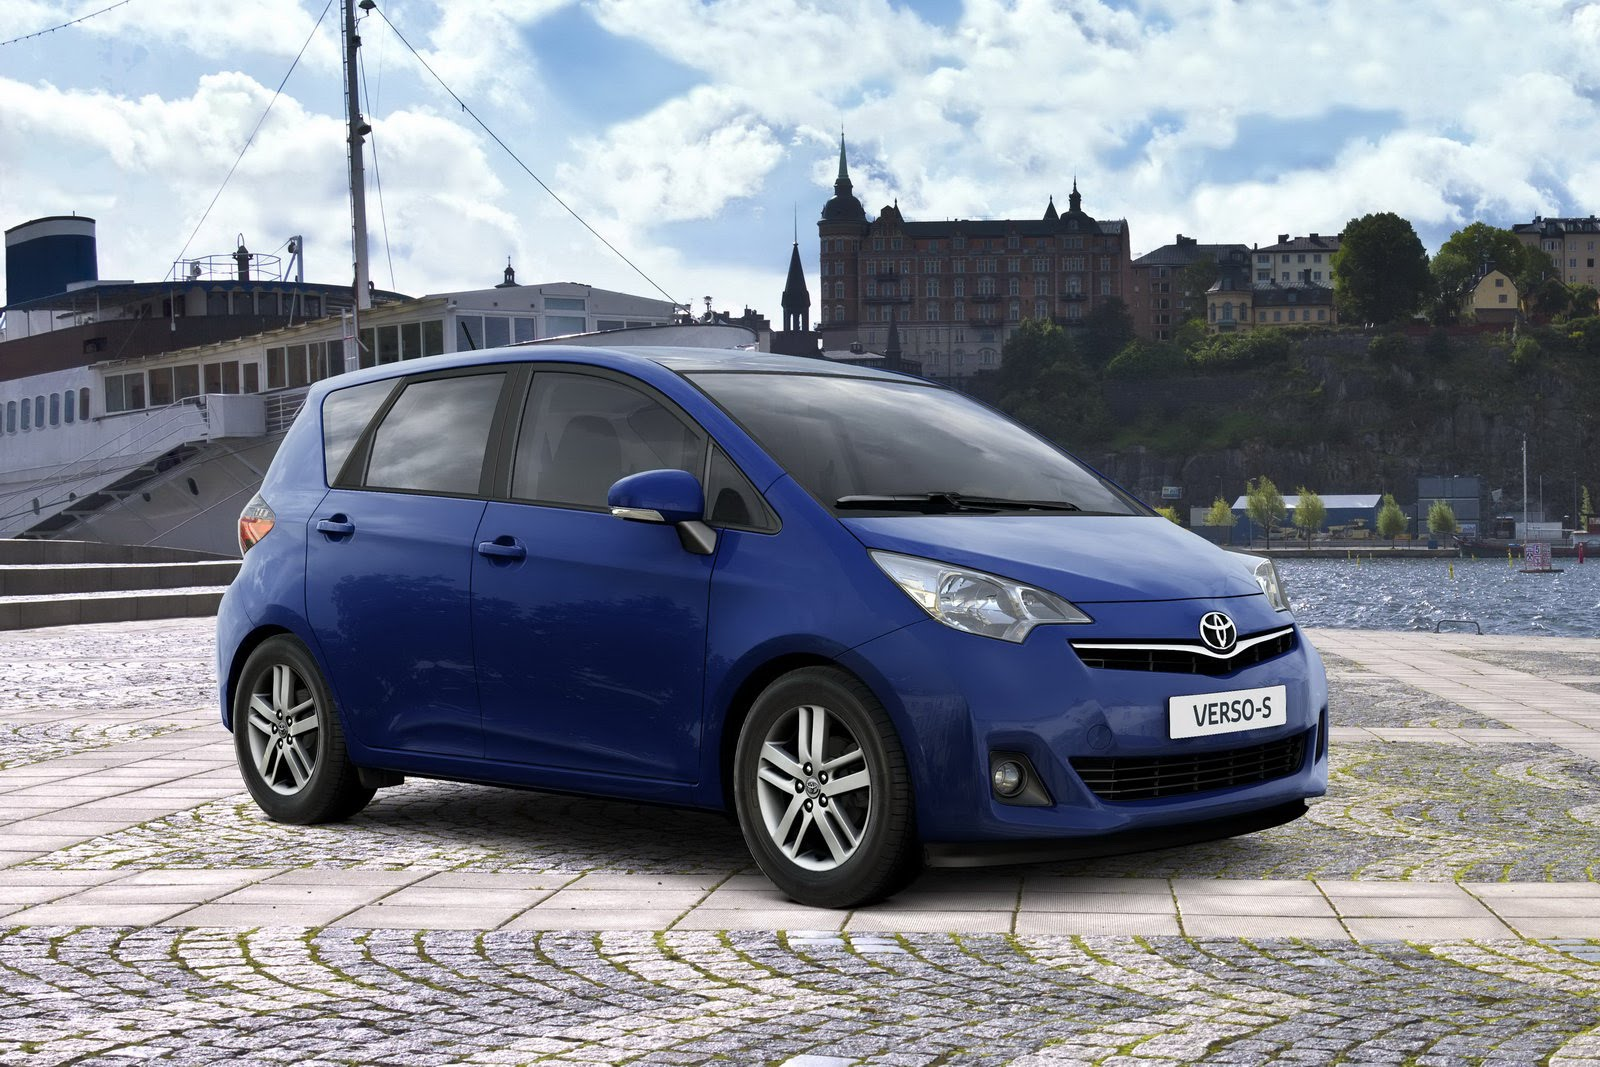 Toyota Verso S Technical Details History Photos On